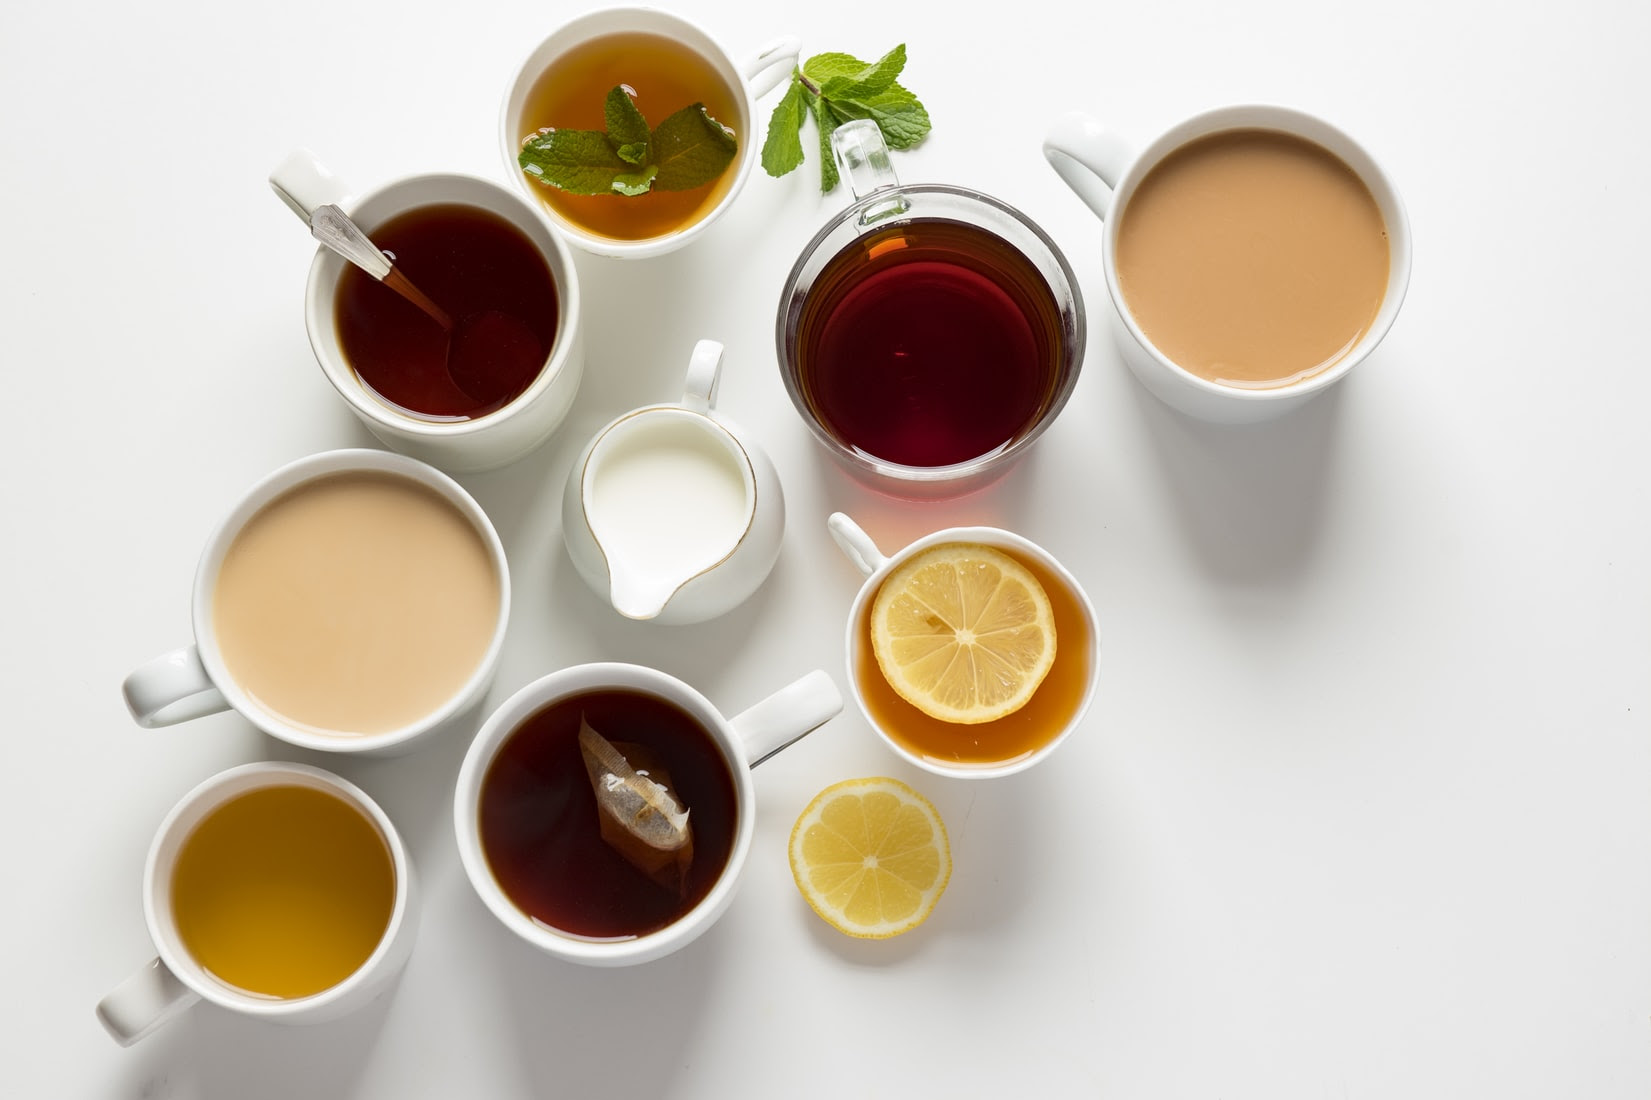 The scientific way to make a perfect cup of tea